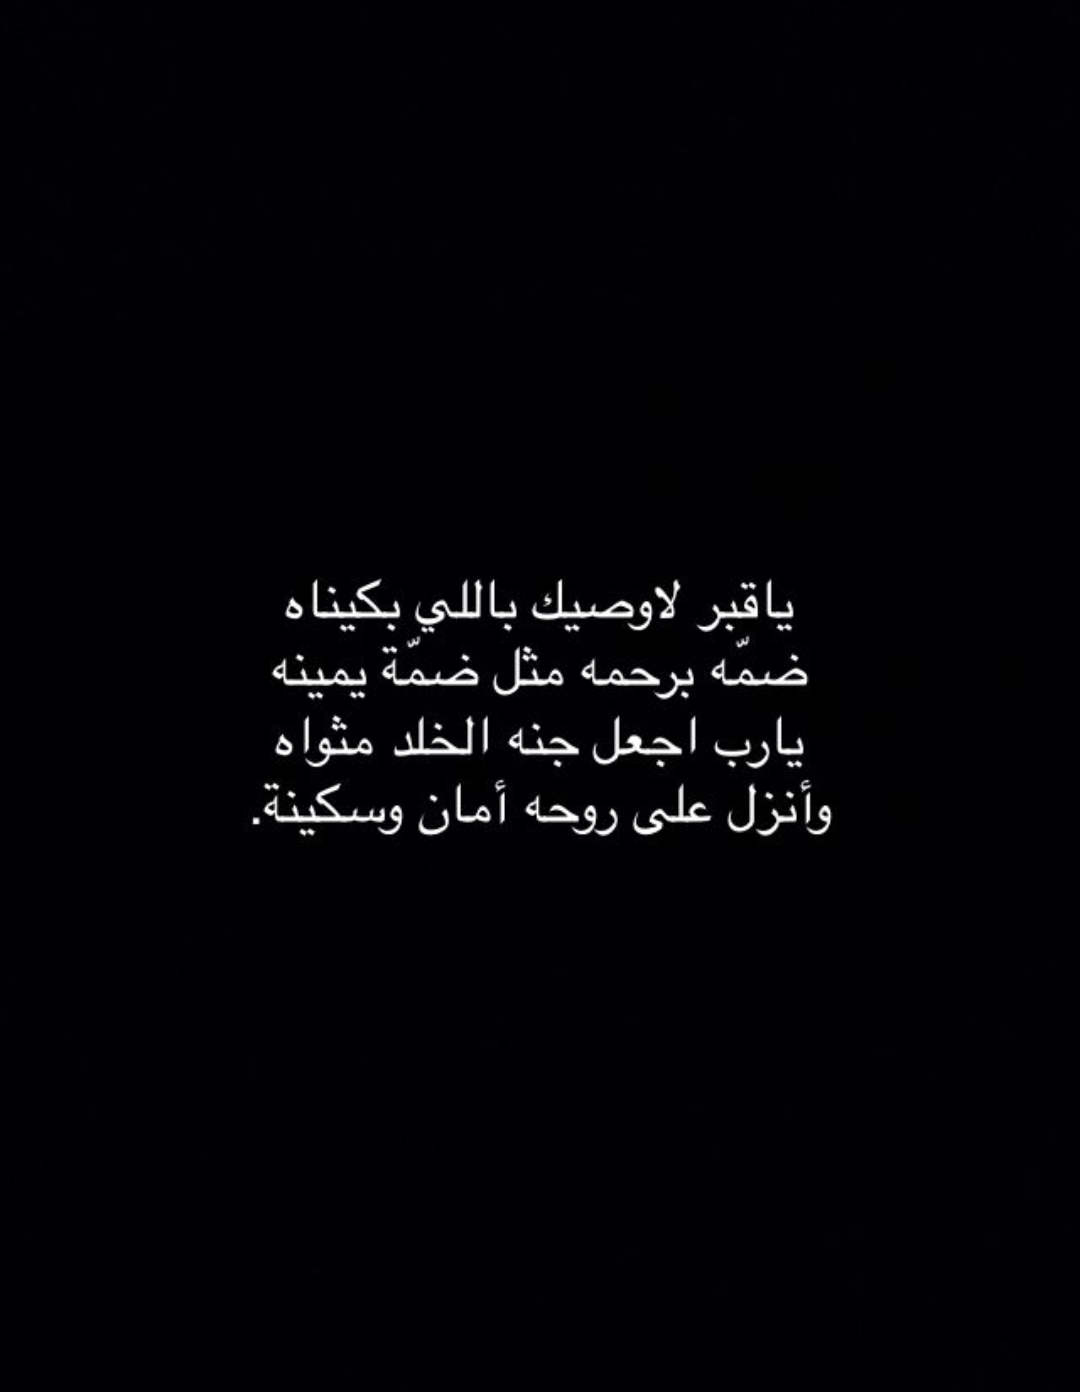 Pin By H Ash On منحوته مخطوطه او رسمة Words Quotes Funny Arabic Quotes Beautiful Arabic Words